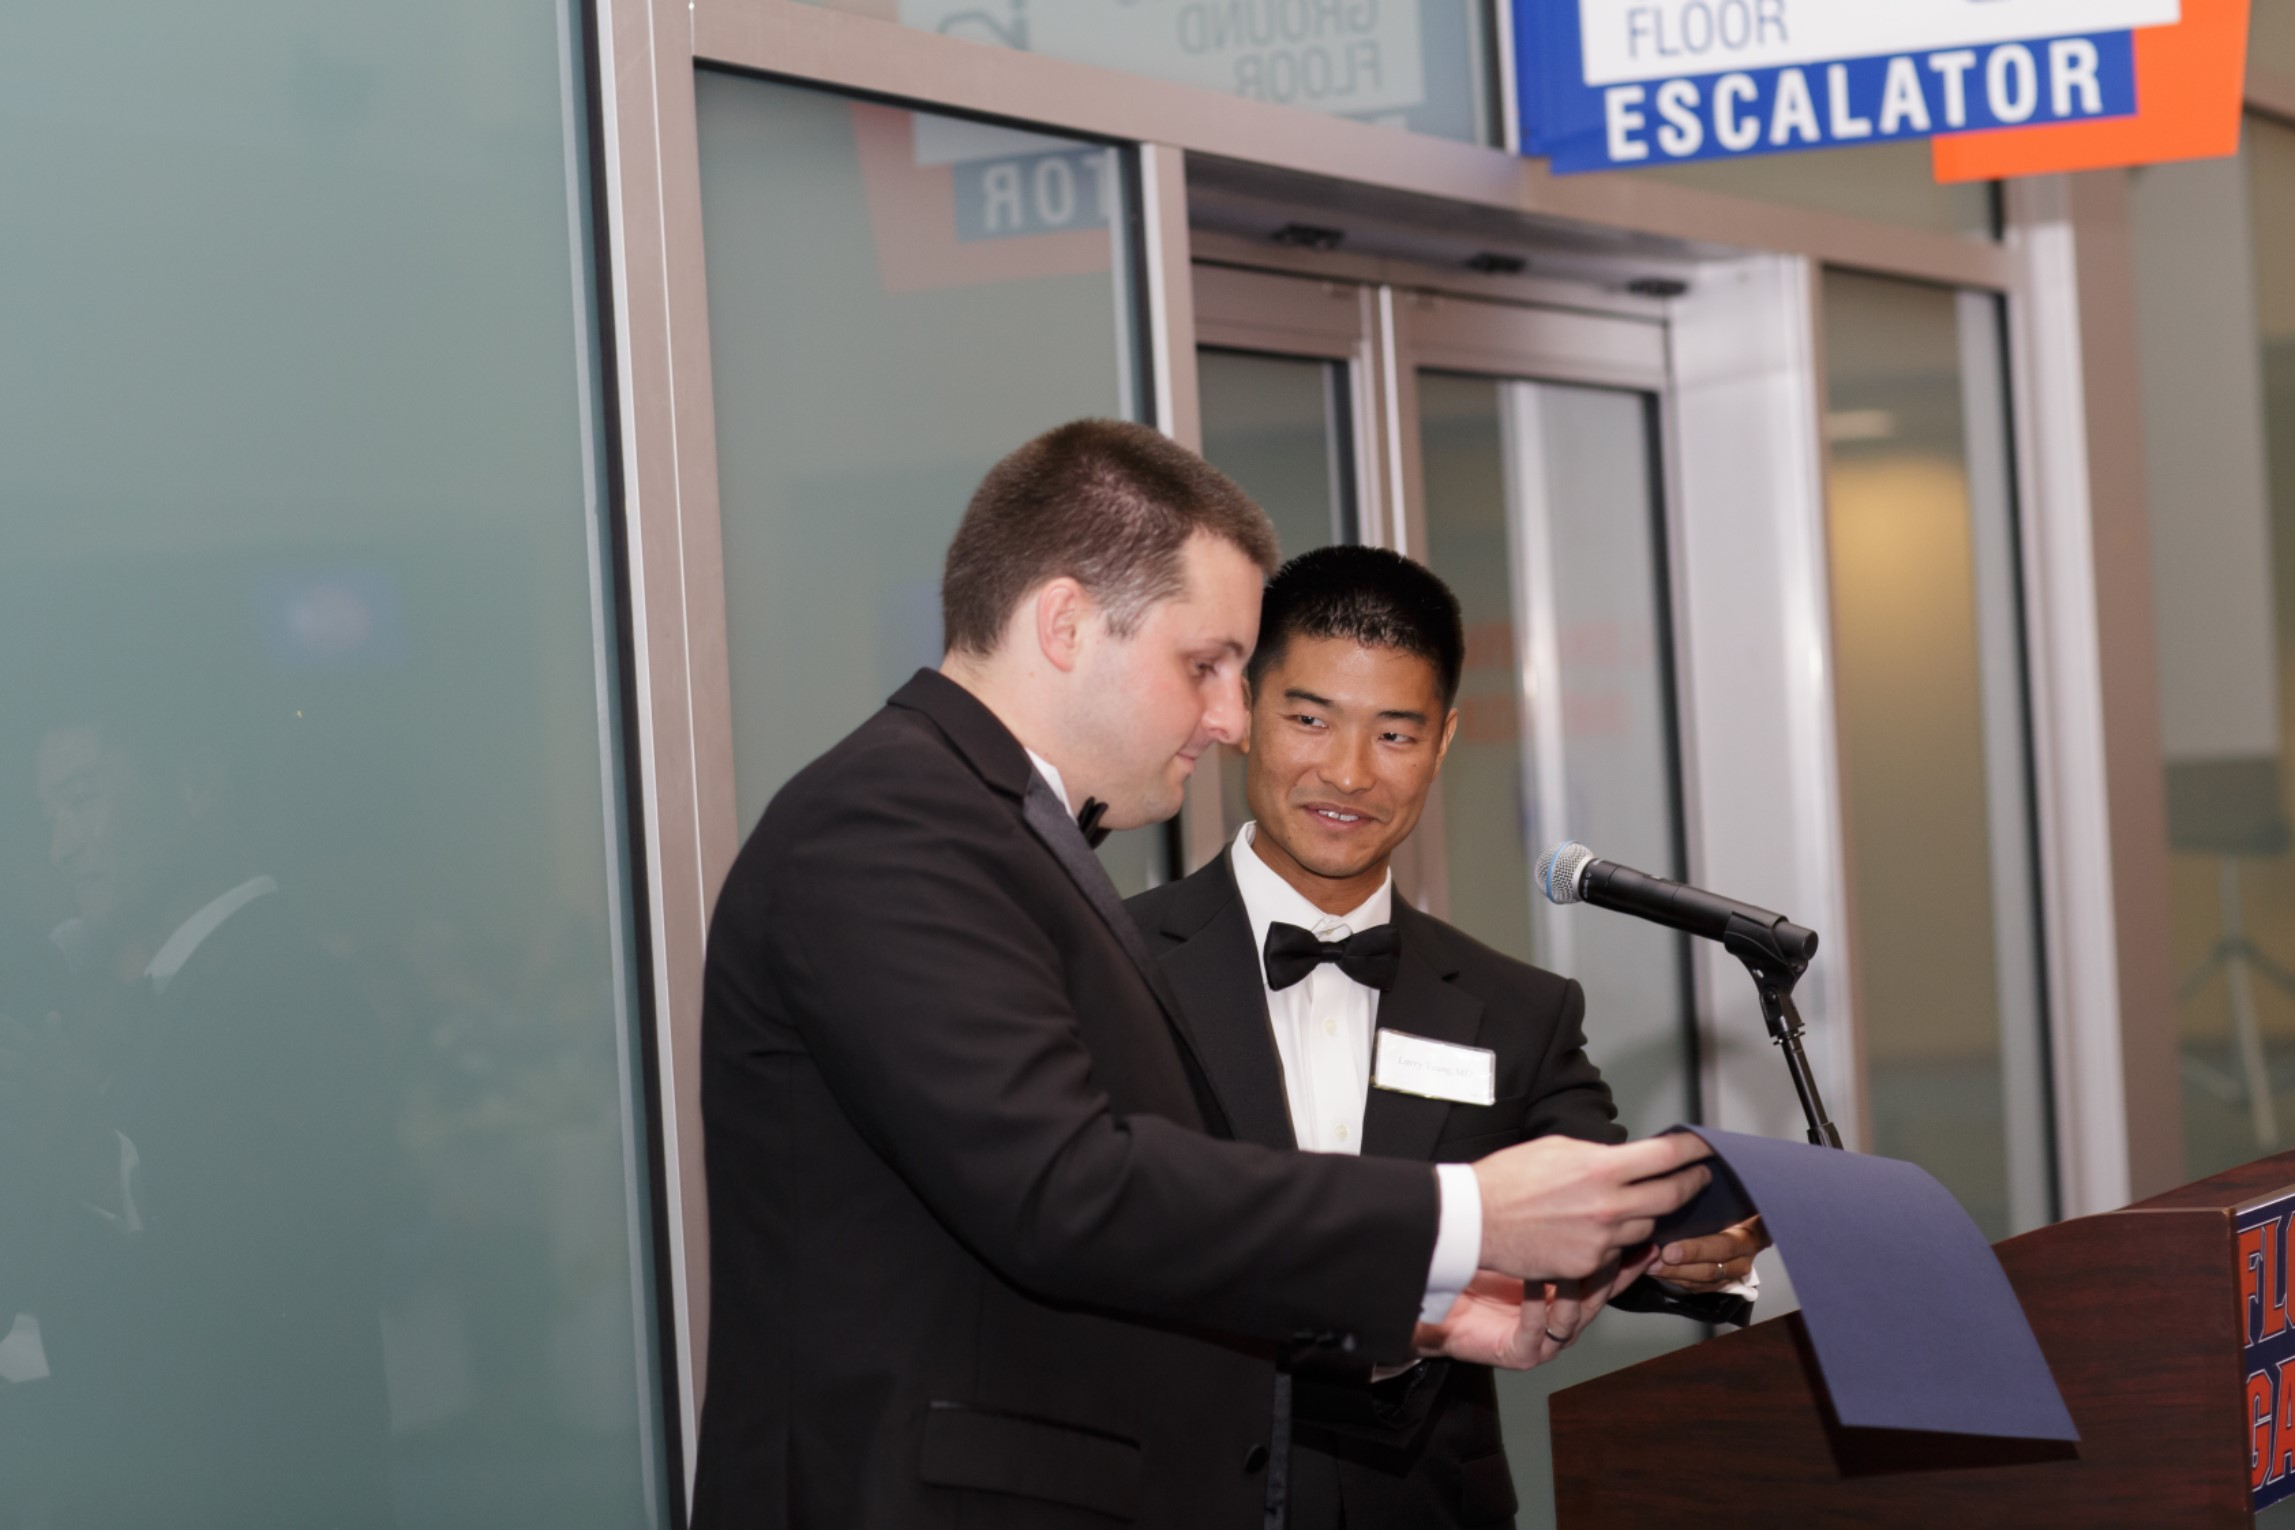 dr yeung presenting an award to dr terry at the resident graduation banquet